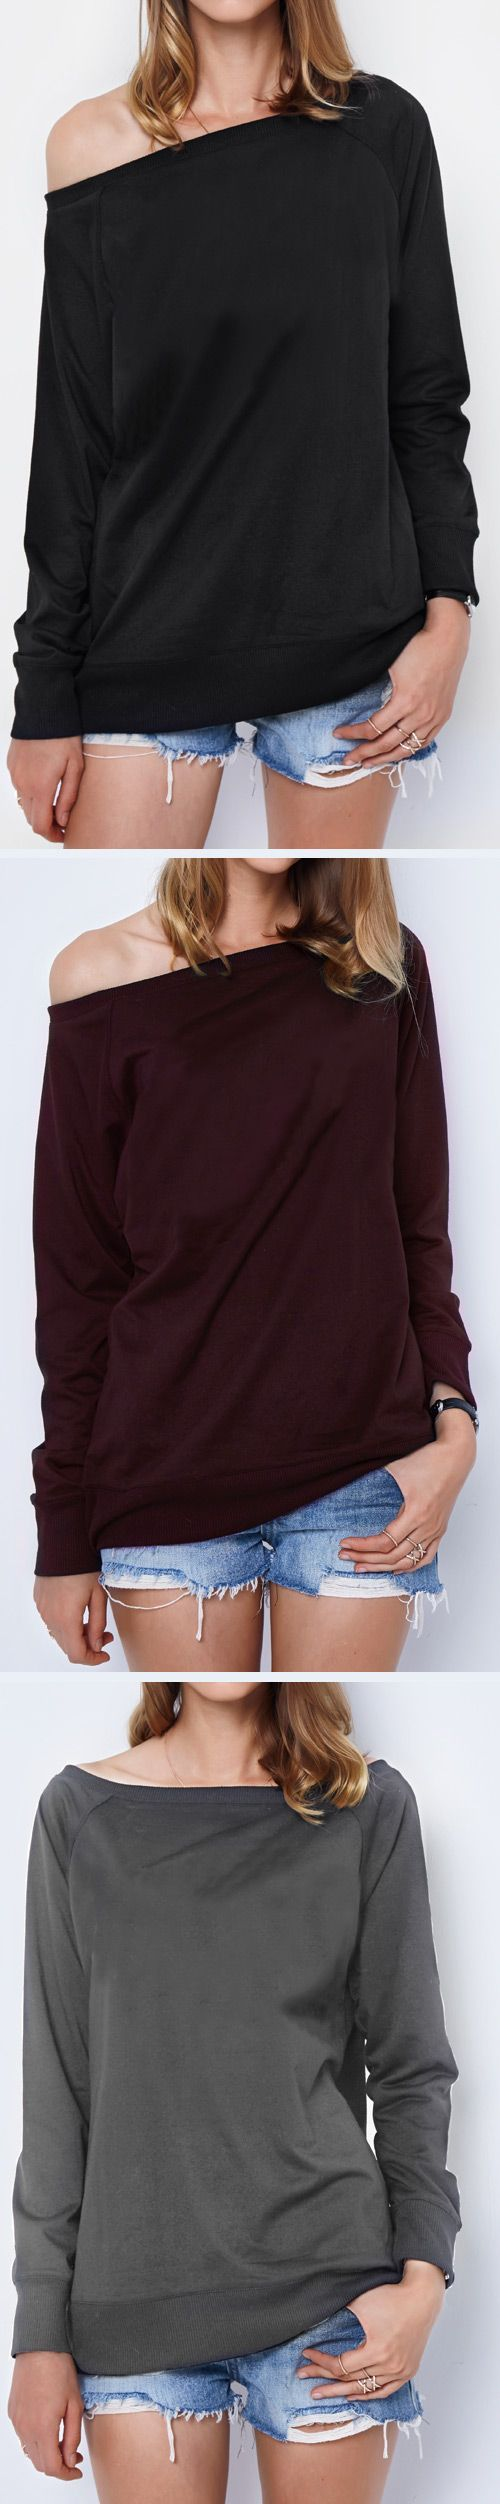 Catch it, Only $19.99 & Short Shipping Time. Easy Return + Refund! We love this one shoulder sweatshirt! The color is a great neutral and will go with so many outfits. Take some fall essentials to your wardrobe at Cupshe.com !